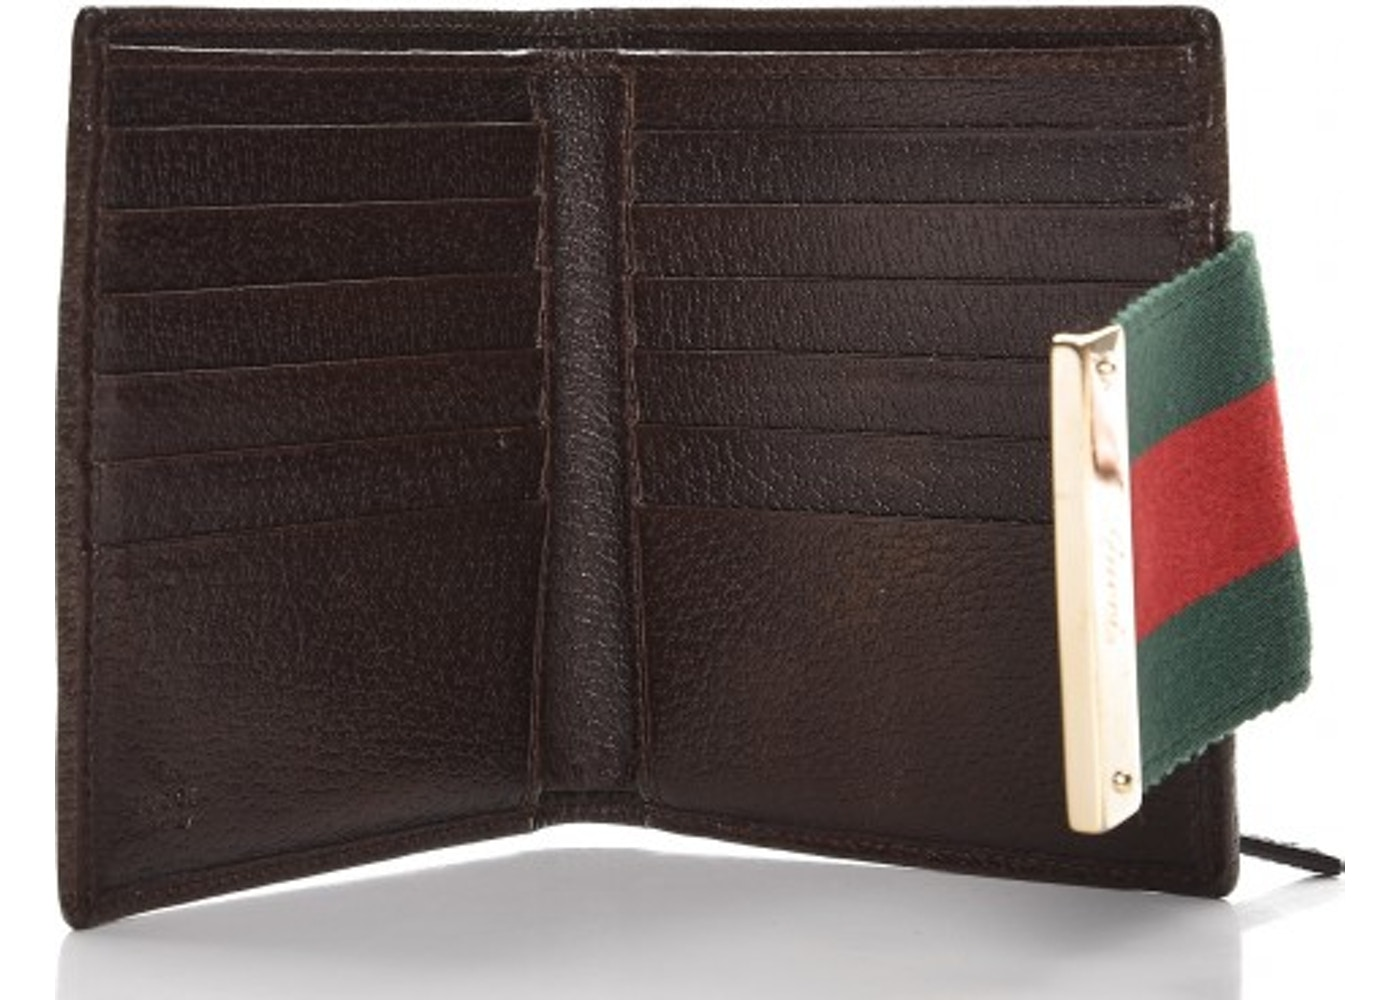 a846d9654271 Gucci Ladies Web French Flap Wallet Monogram GG Dark Brown/Green/Red